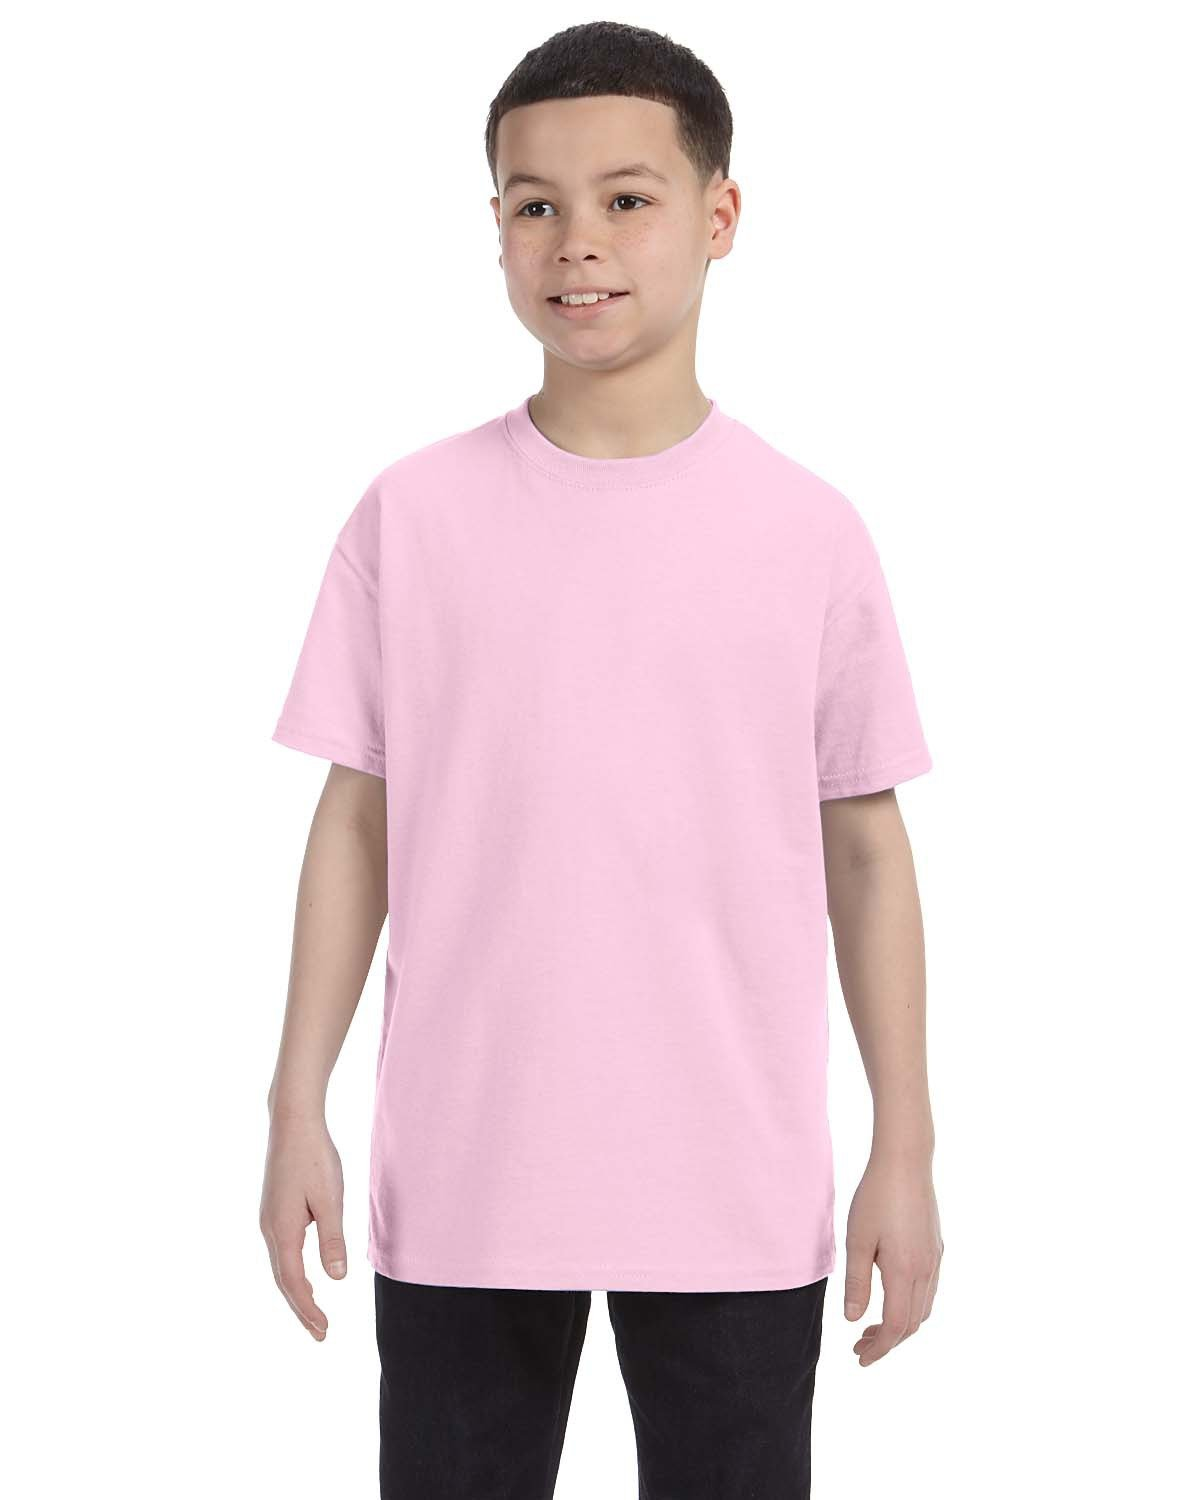 Hanes Youth Authentic-T T-Shirt PALE PINK